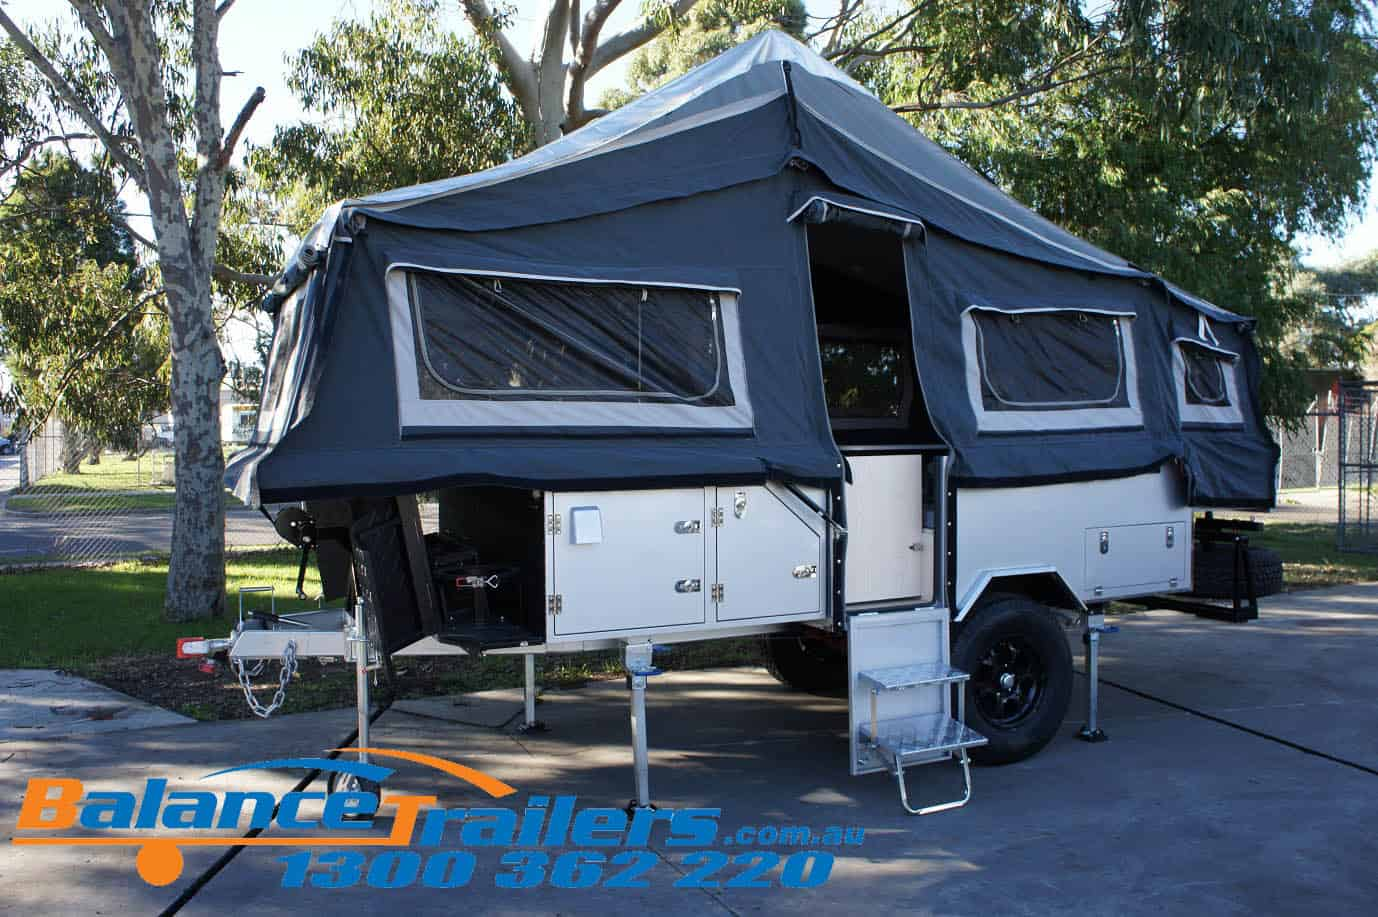 Hard Floor Camper Trailer BT02HF Image 19